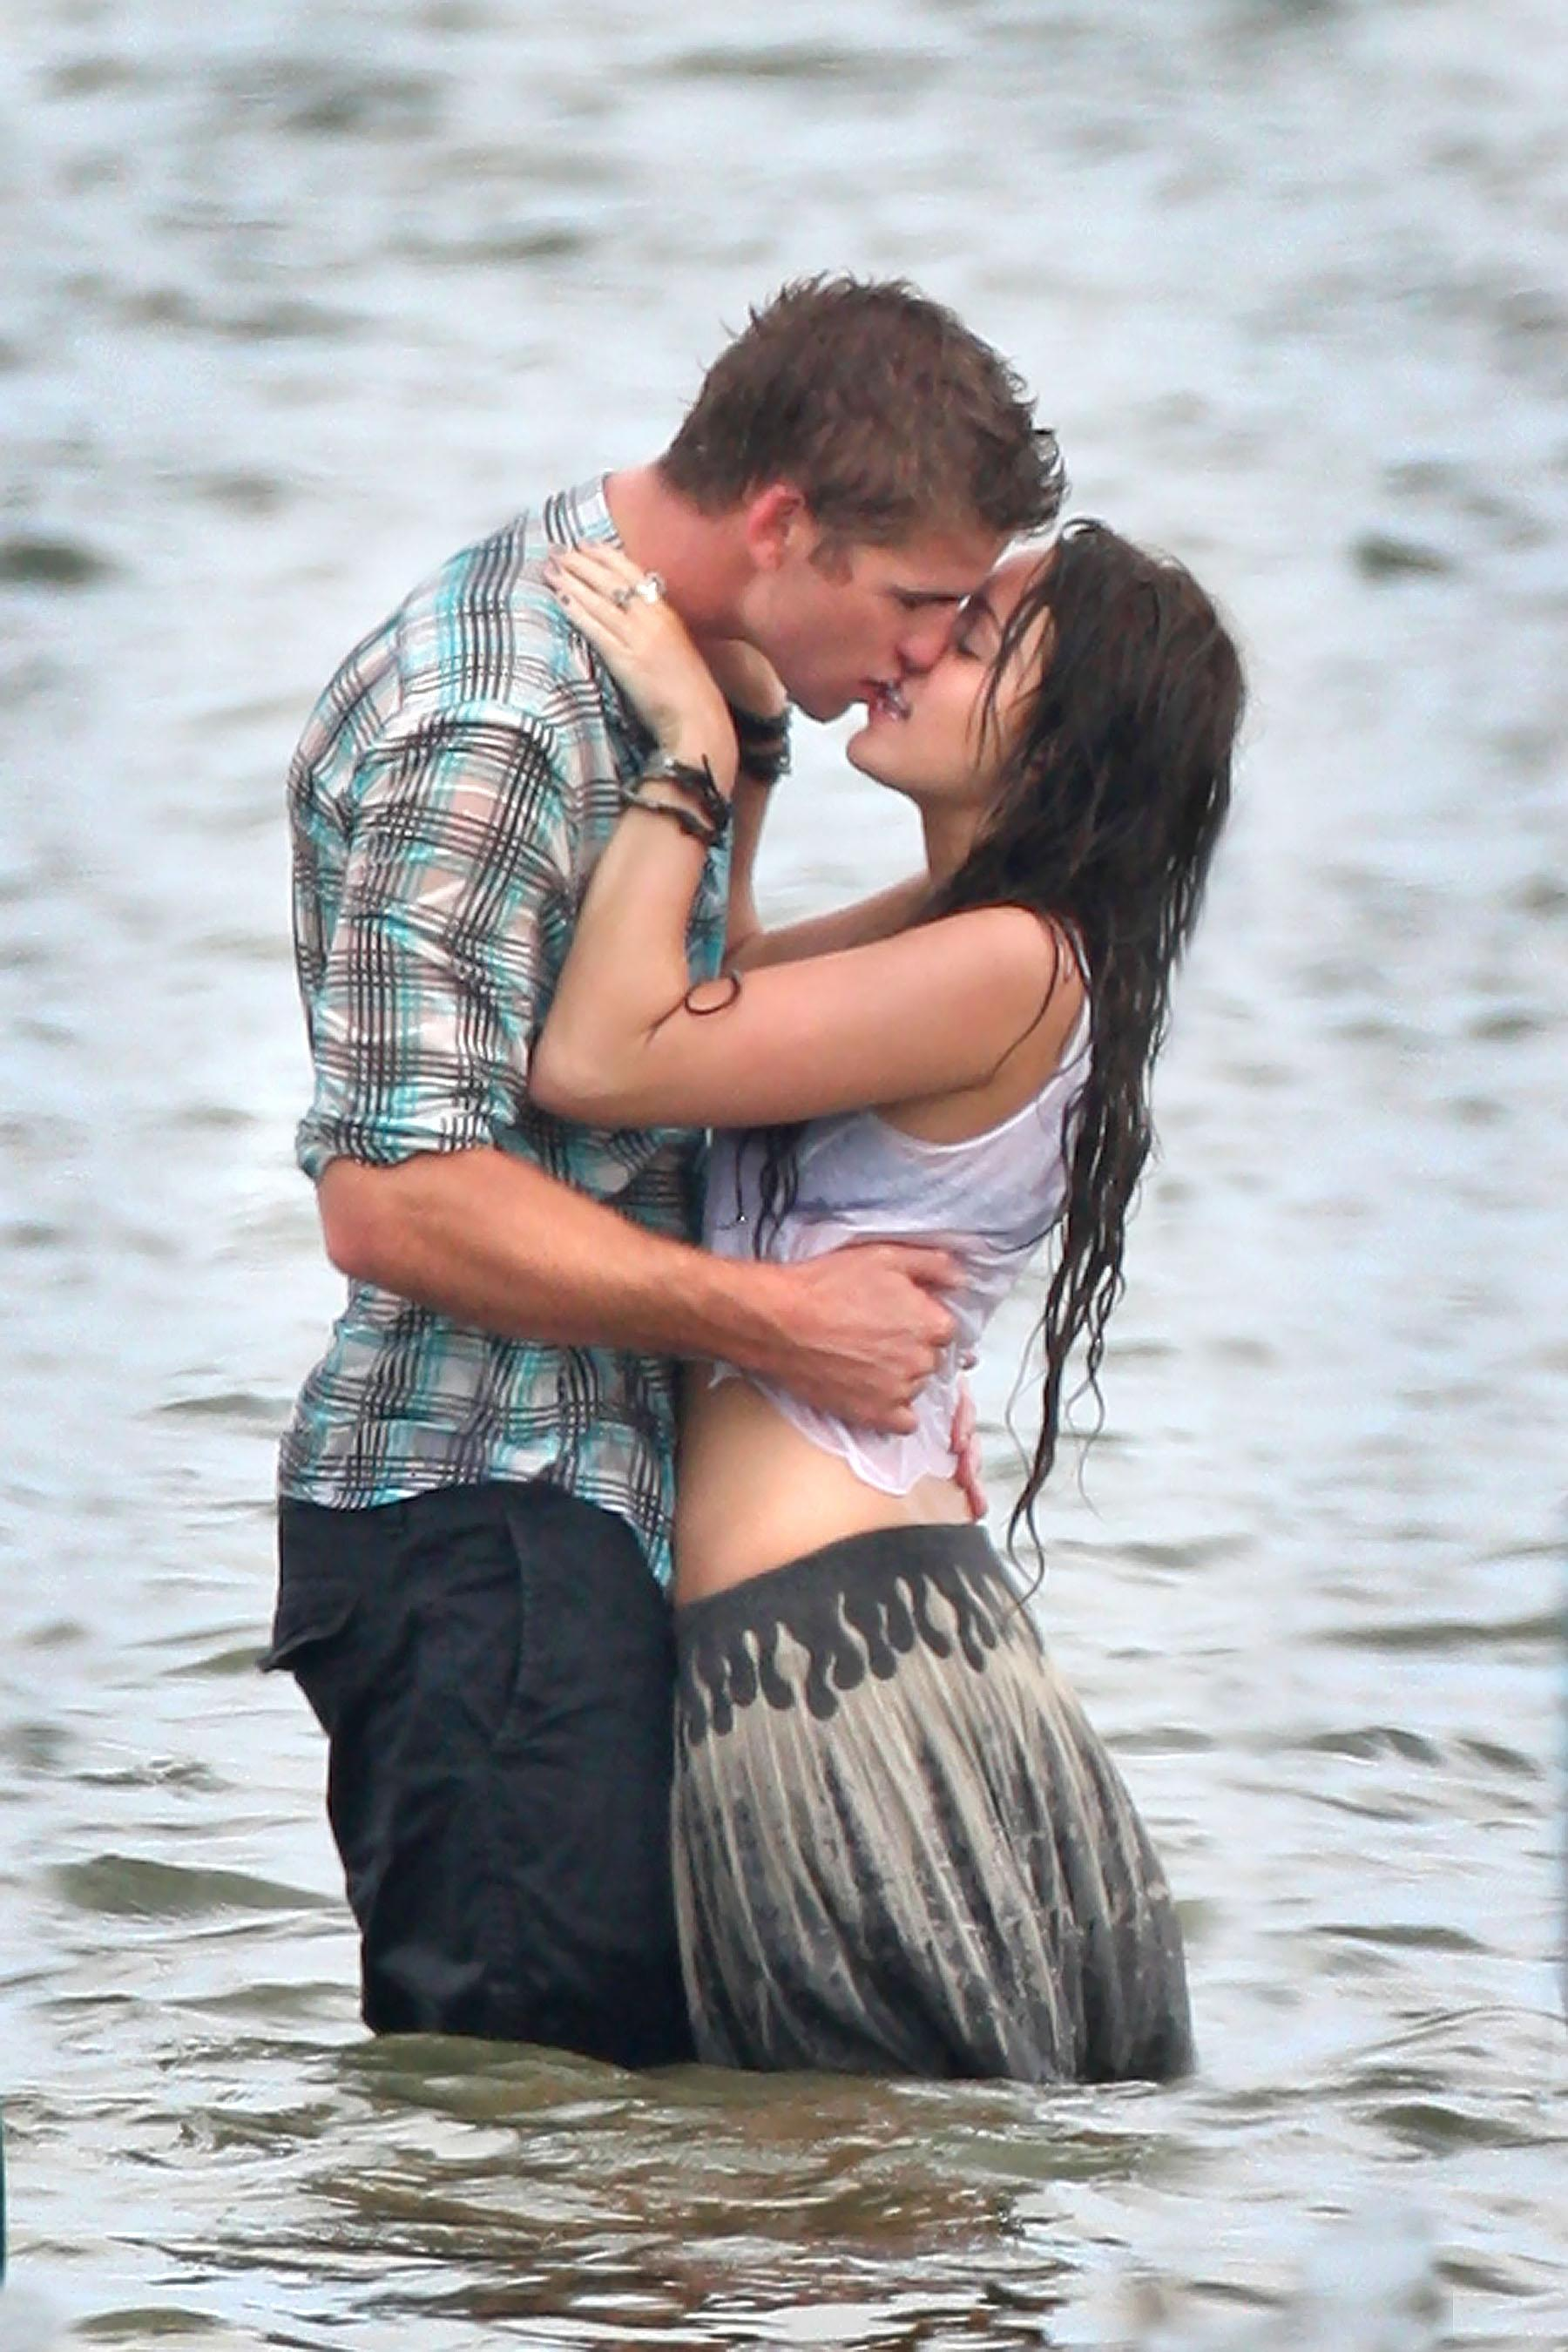 Miley Cyrus Shares Throwback Photo Of Her First Smooch With Liam Hemsworth For International Kissing Day